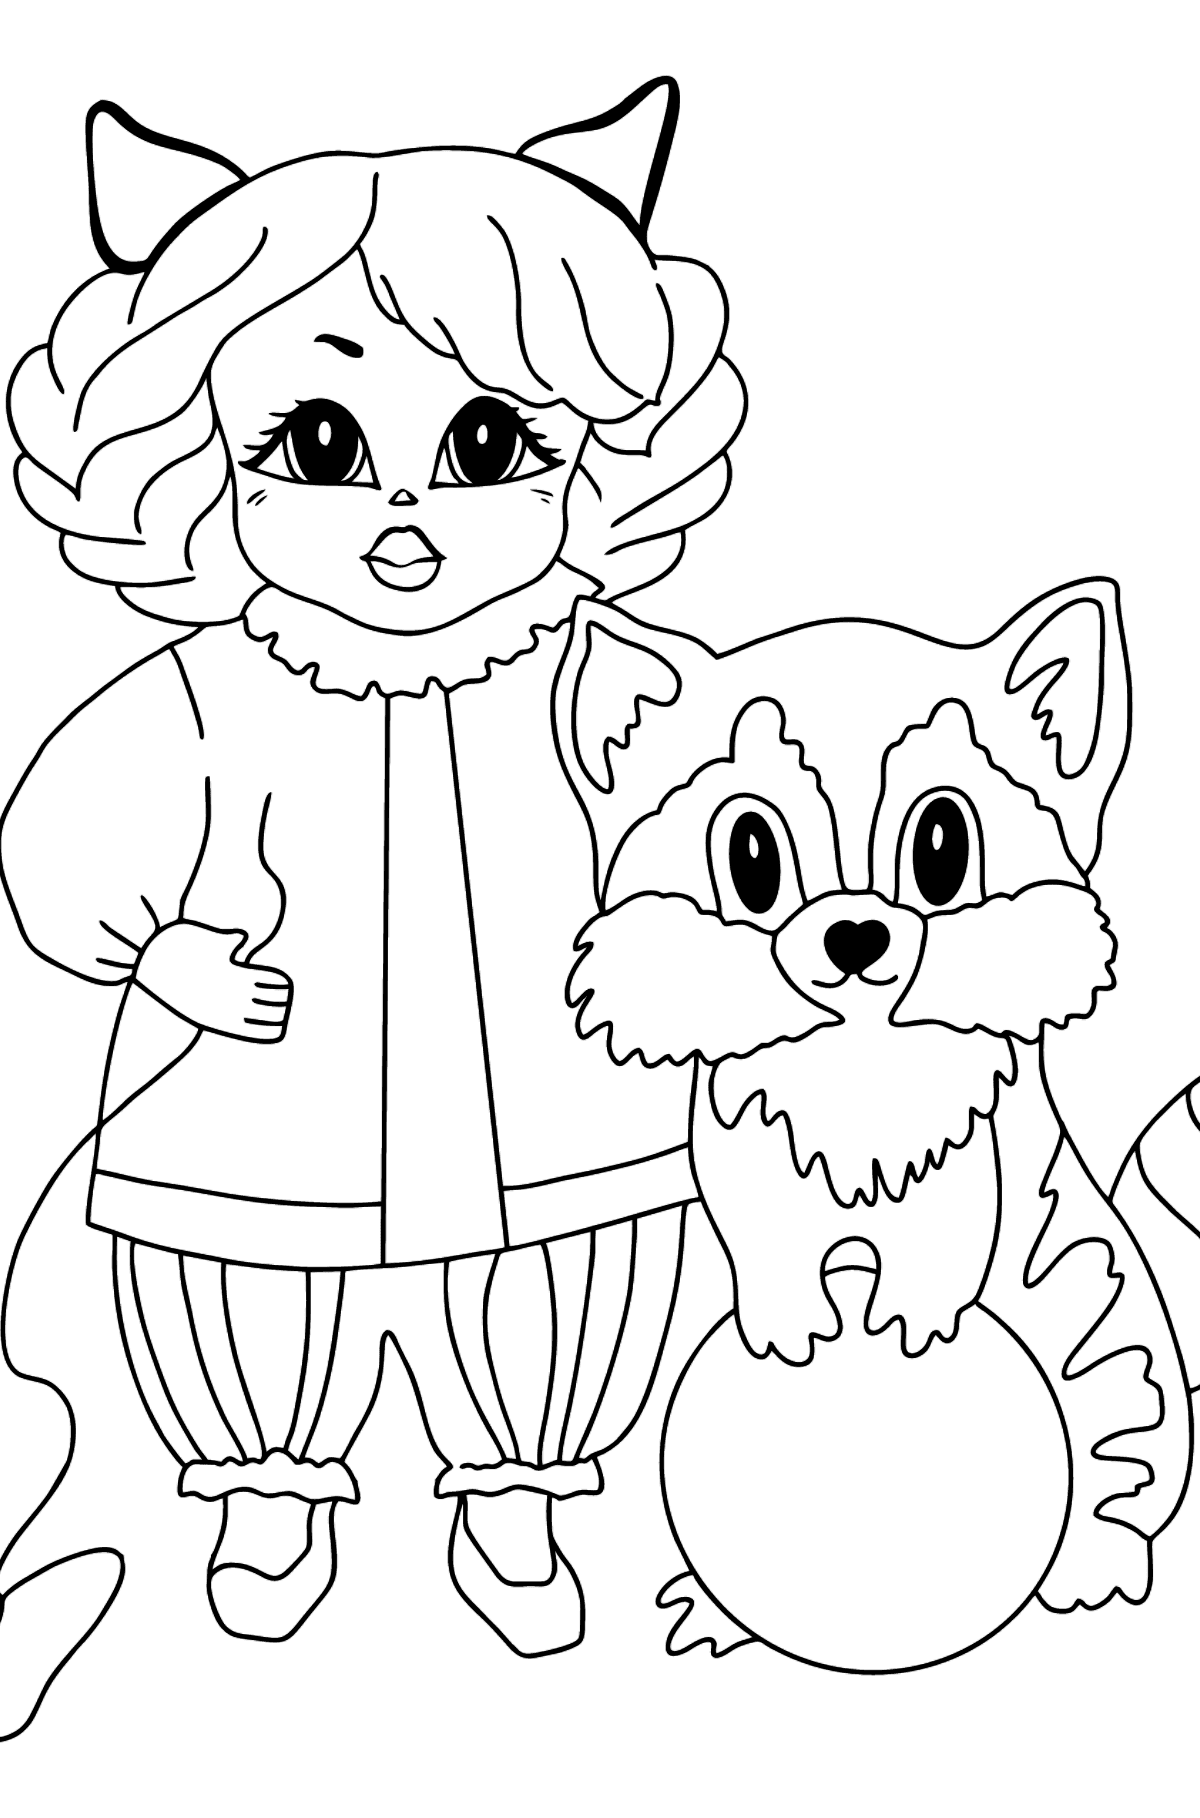 Coloring Page - A Princess with a Cat and a Racoon - For Girls - Coloring Pages for Kids